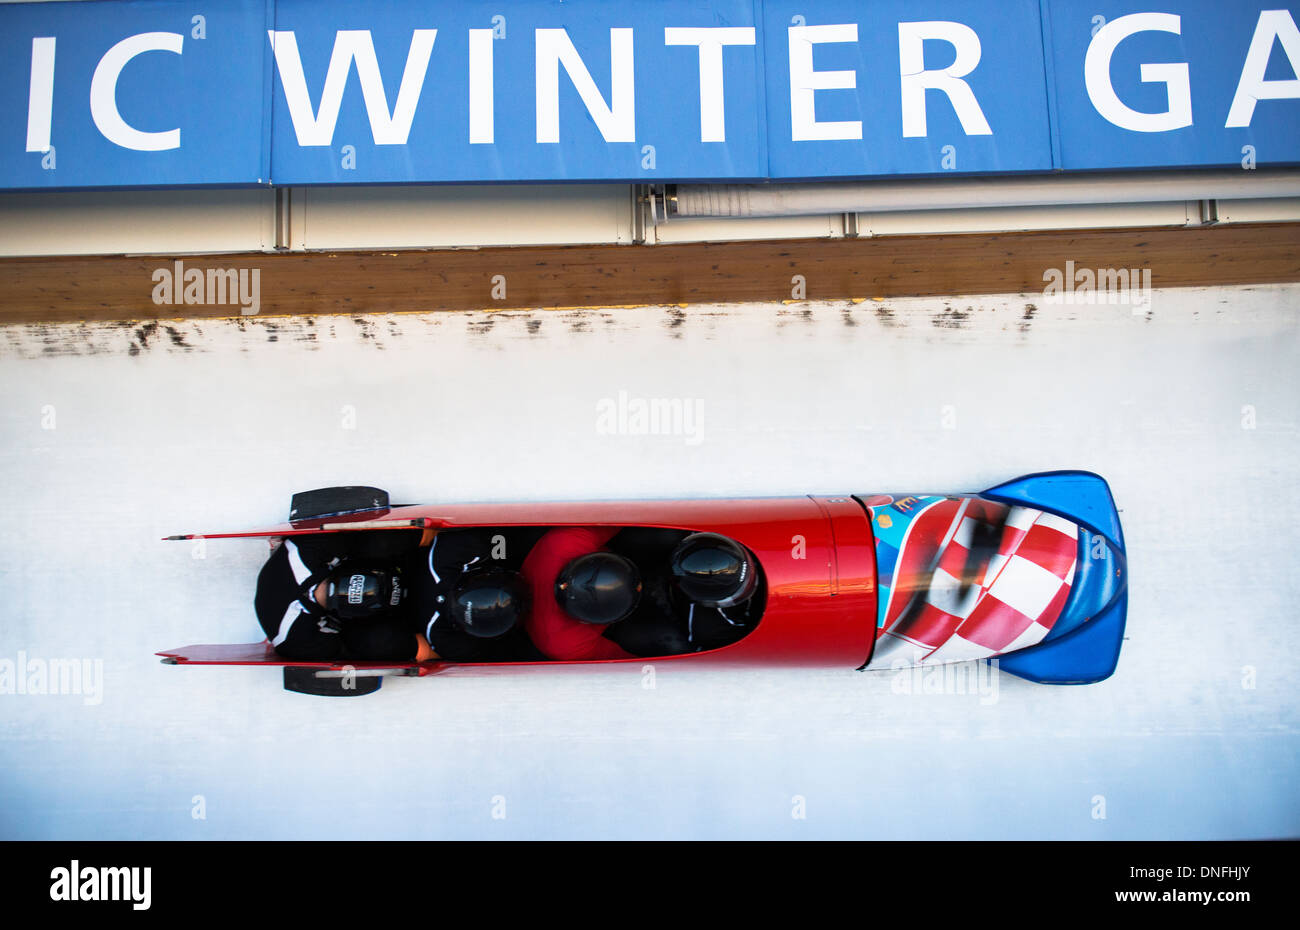 The Croat bobsled team racing on the ice track during an official tournament in the winter Olympic center in Park City, Utah. - Stock Image